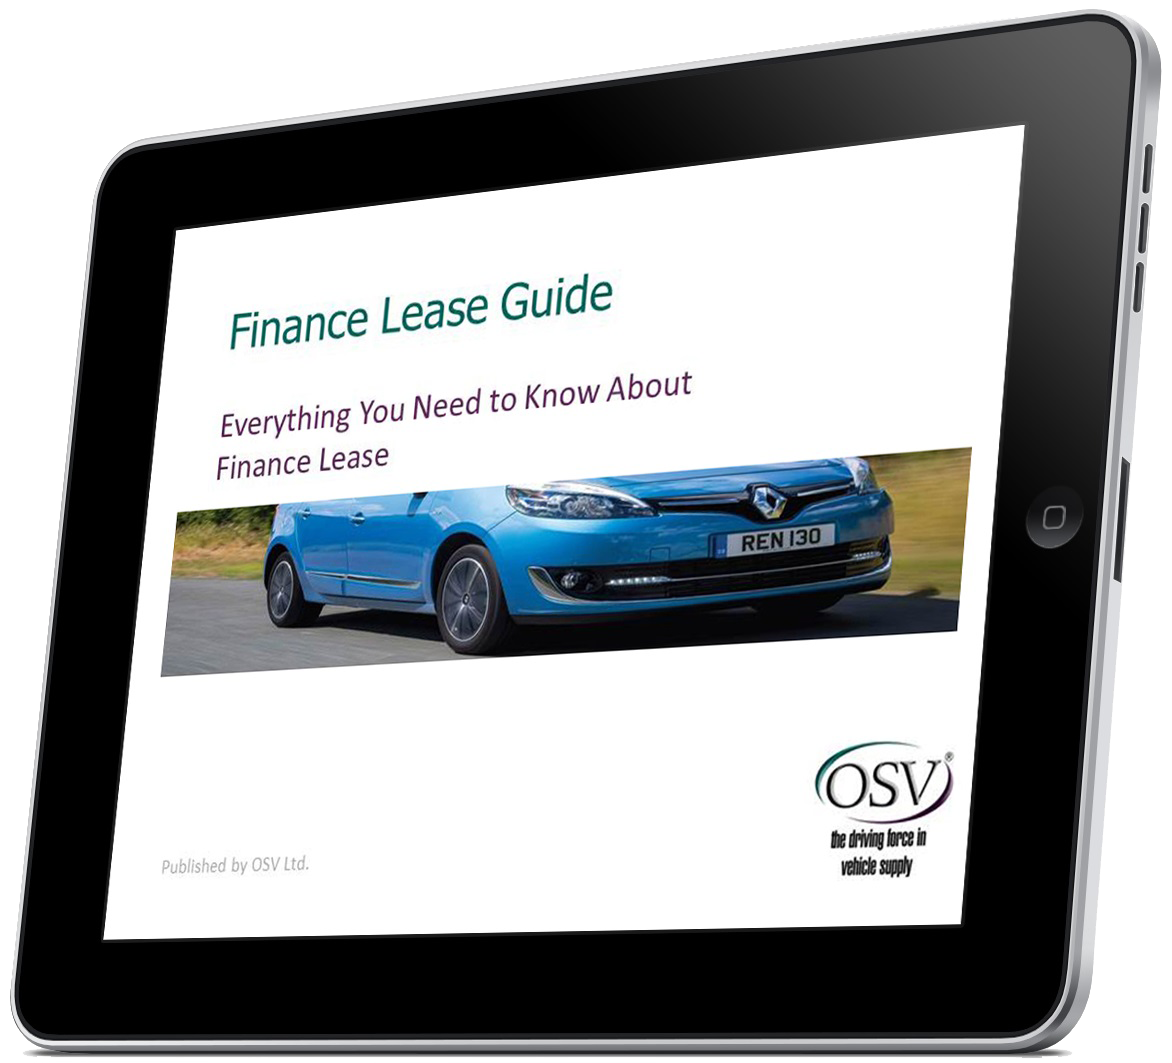 Finance_Lease_Guide_Transparent.png